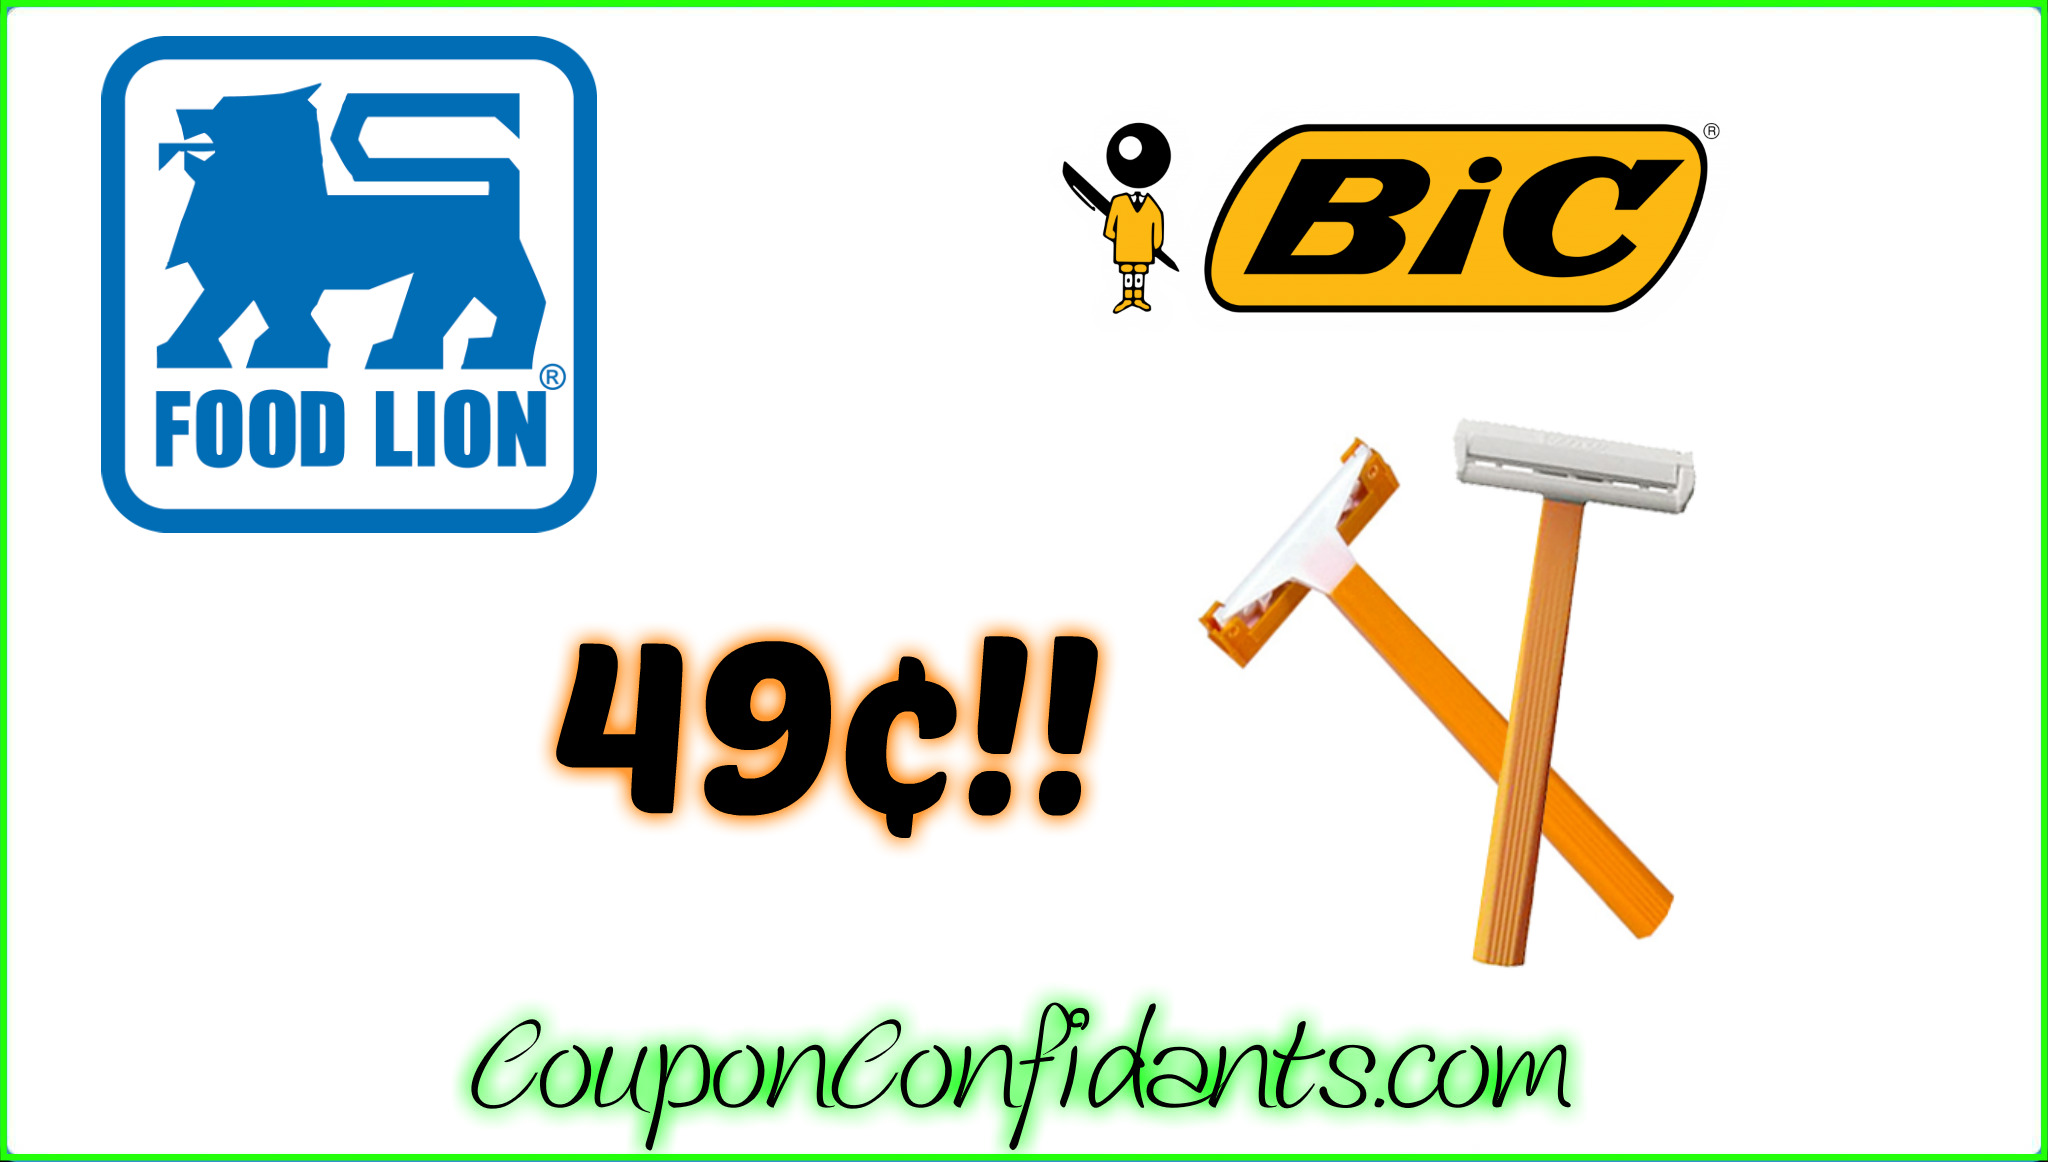 Bic Razors only 49¢ at Food Lion!